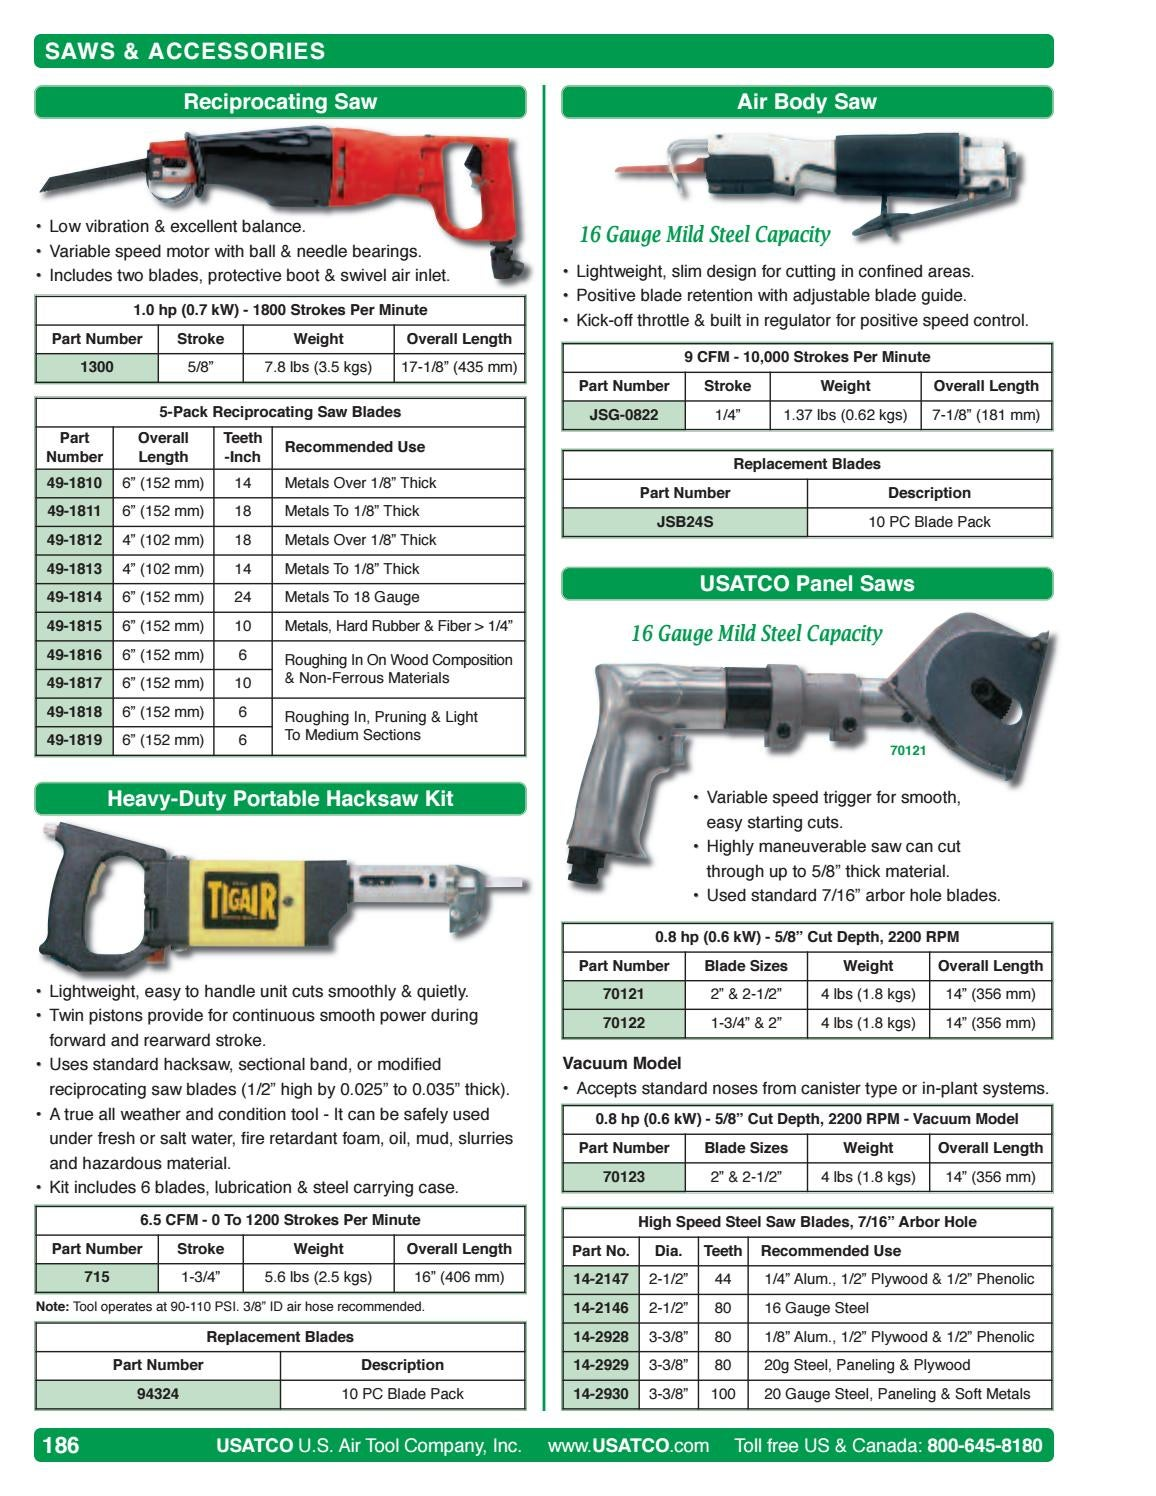 Usatco air tool catalog(1) by Joinmax - issuu